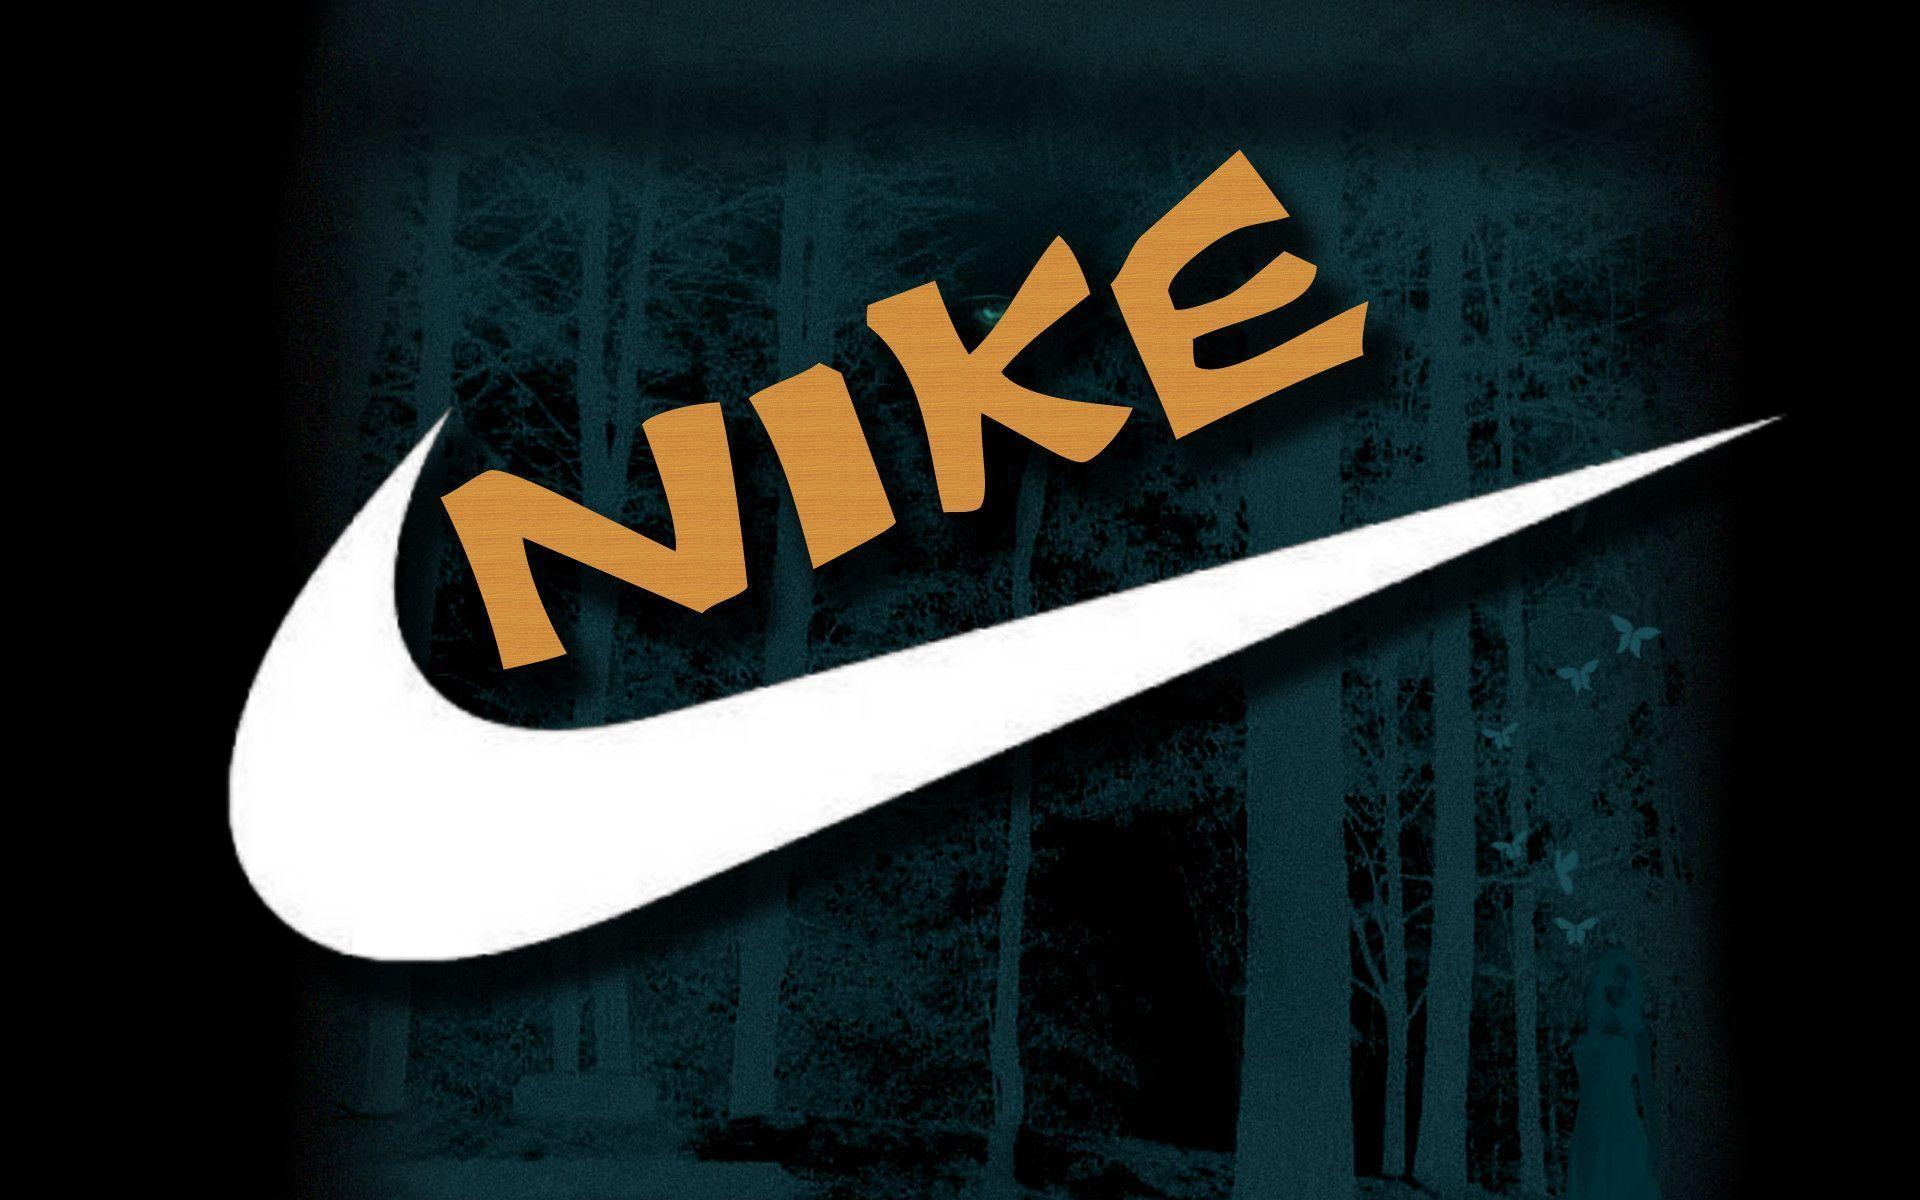 wallpaper nike signs - photo #7